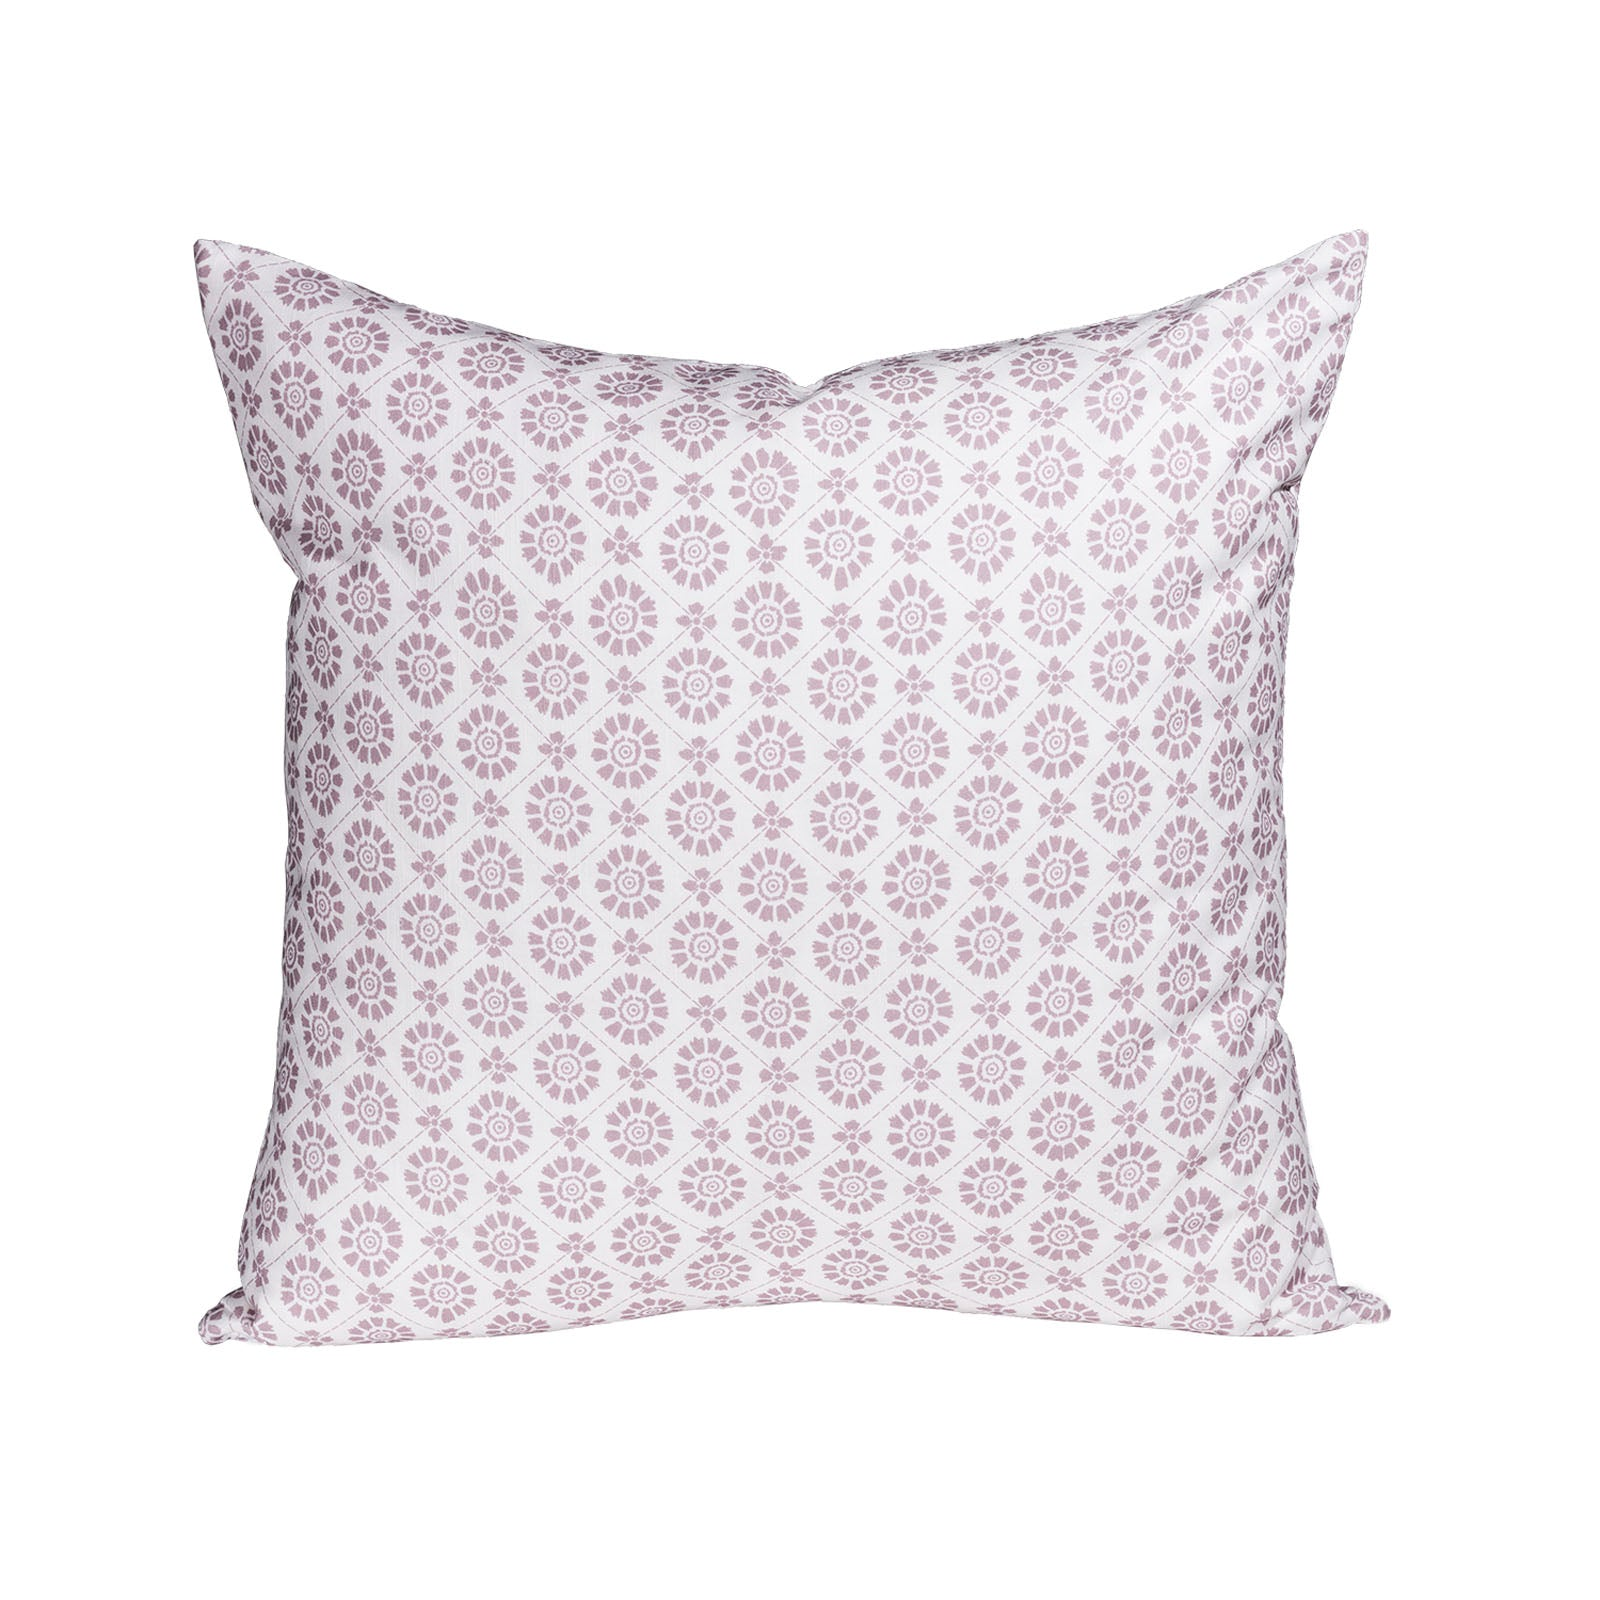 Harriet Pillow in Lilac no. 1